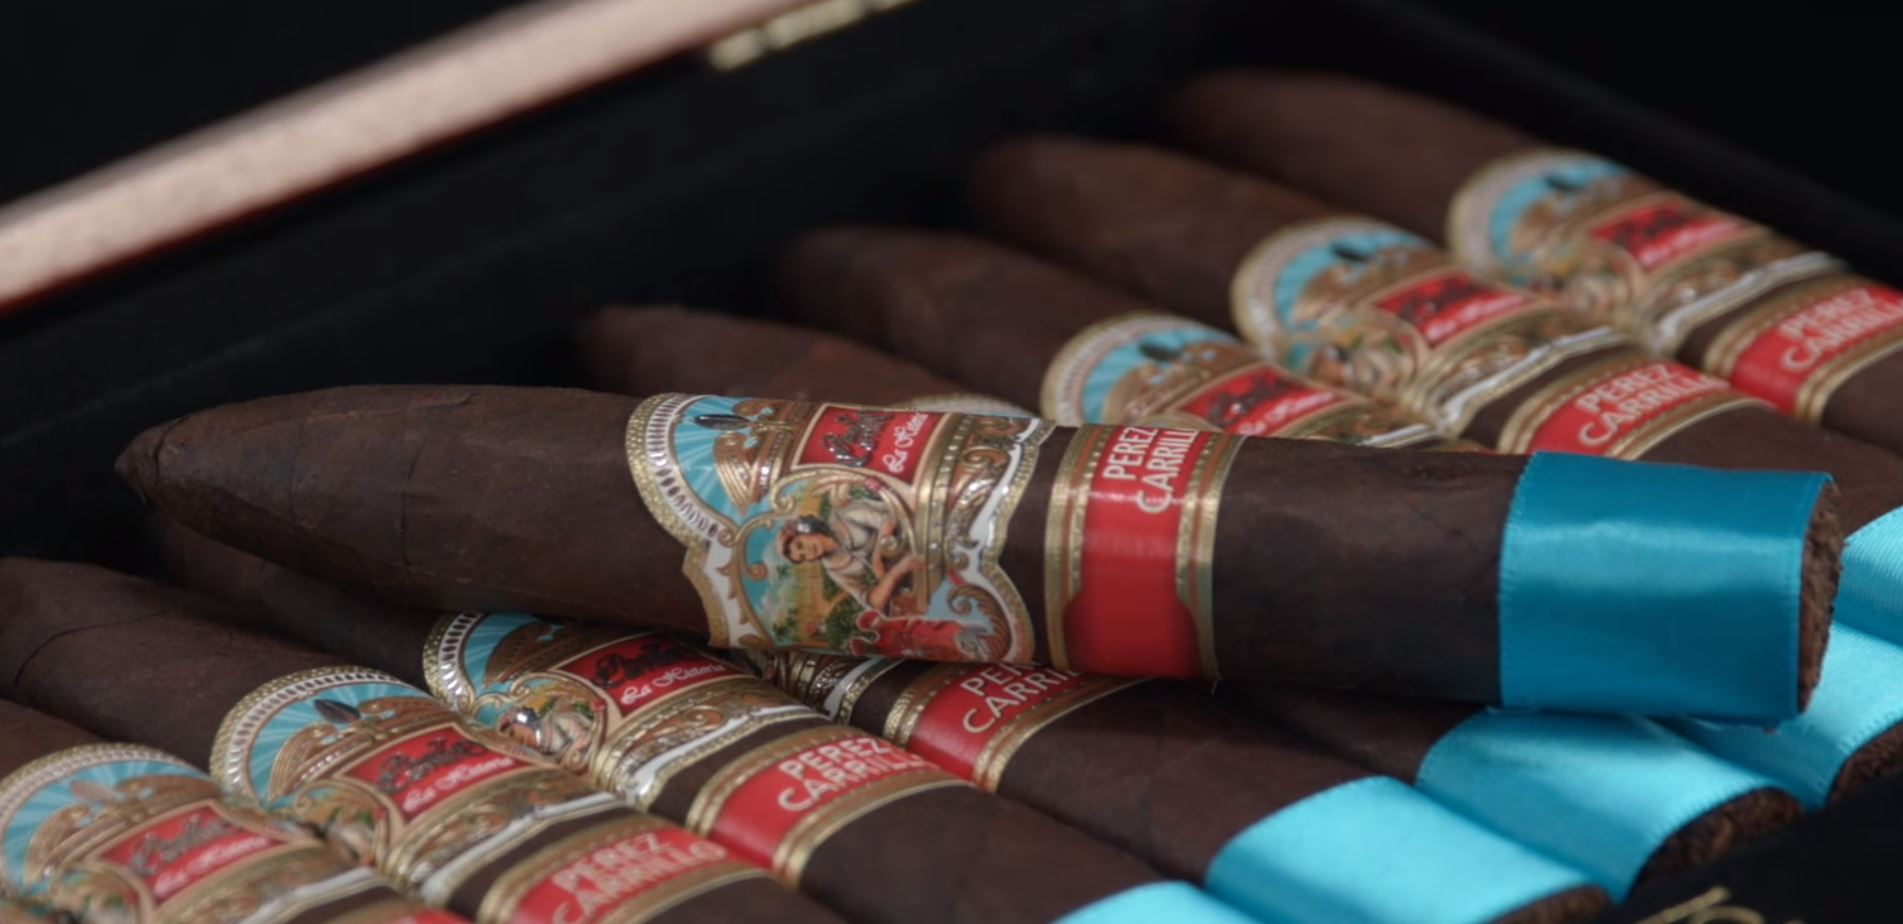 EPC EP Carrillo Cigars Guide EP Carrillo La Historia cigar review Torpedo Cigars Box